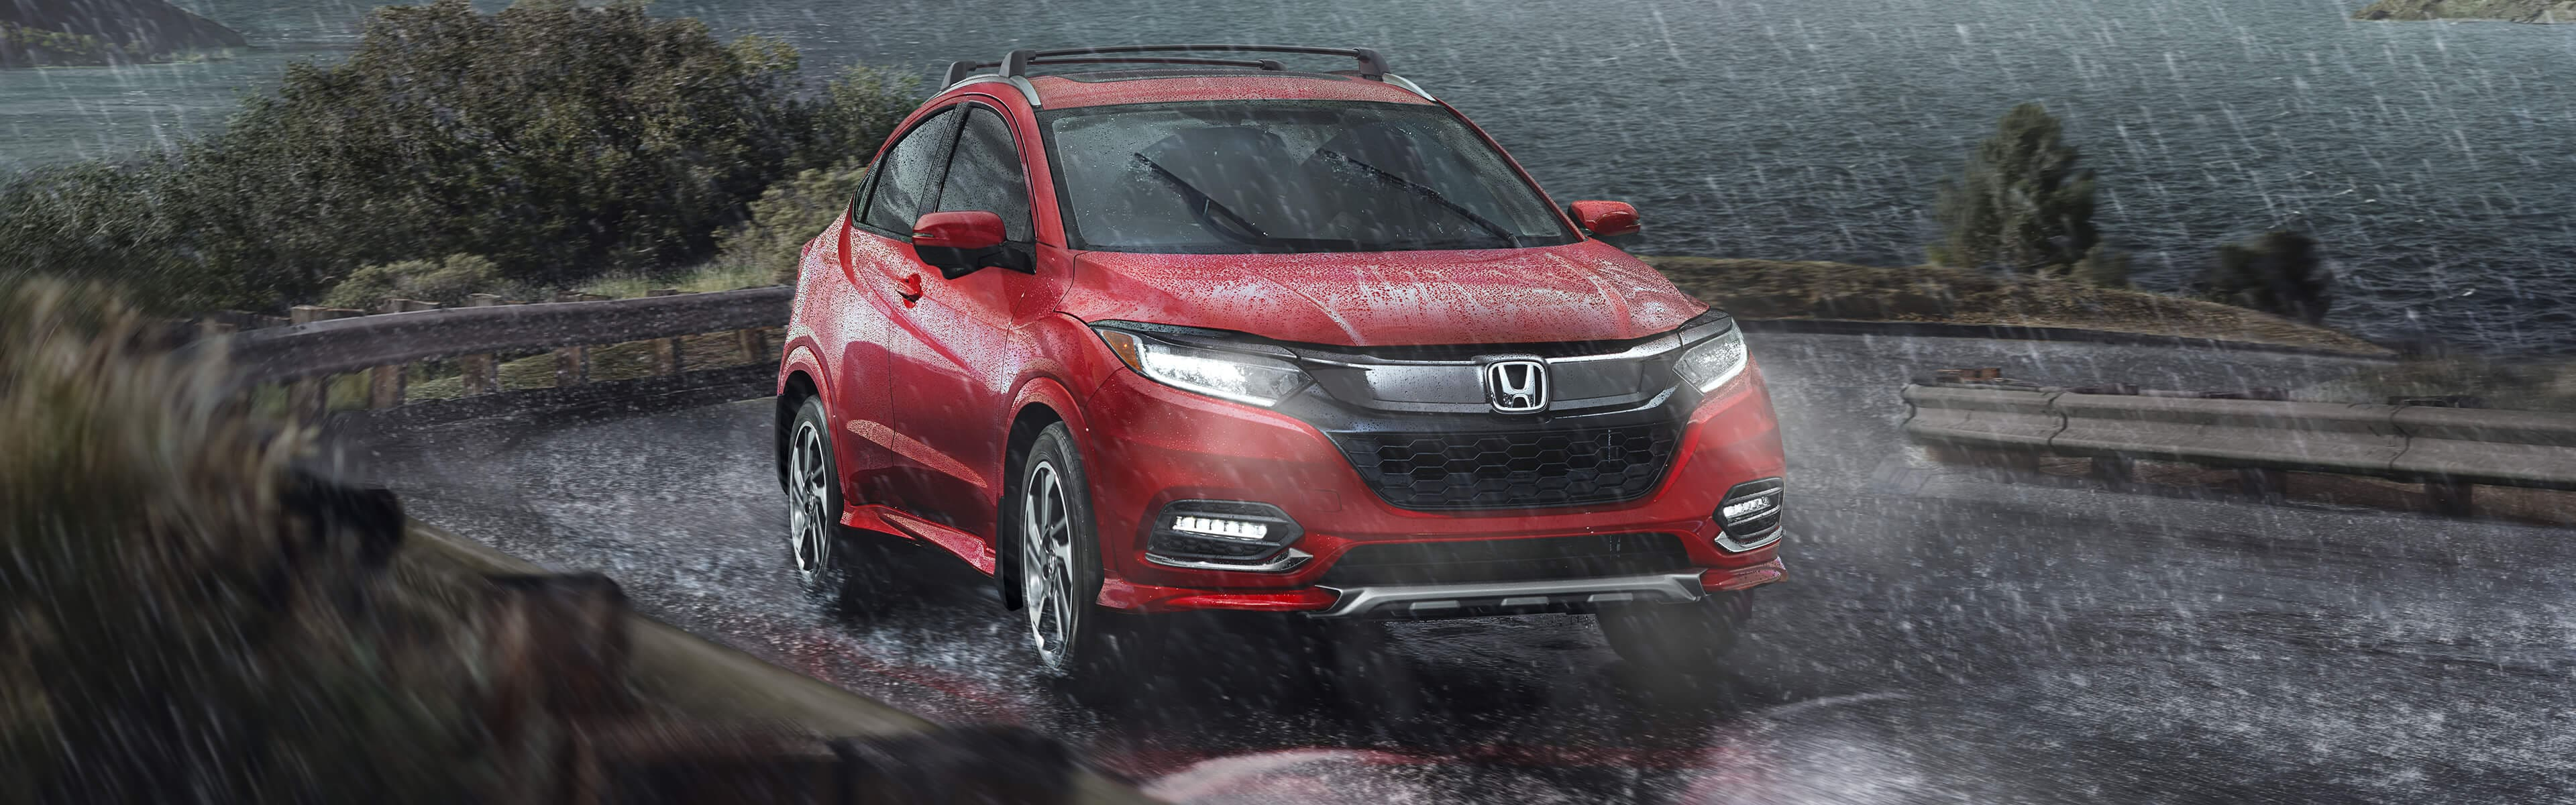 Honda Hrv Avis The 2019 Hr V Crossover Honda Canada